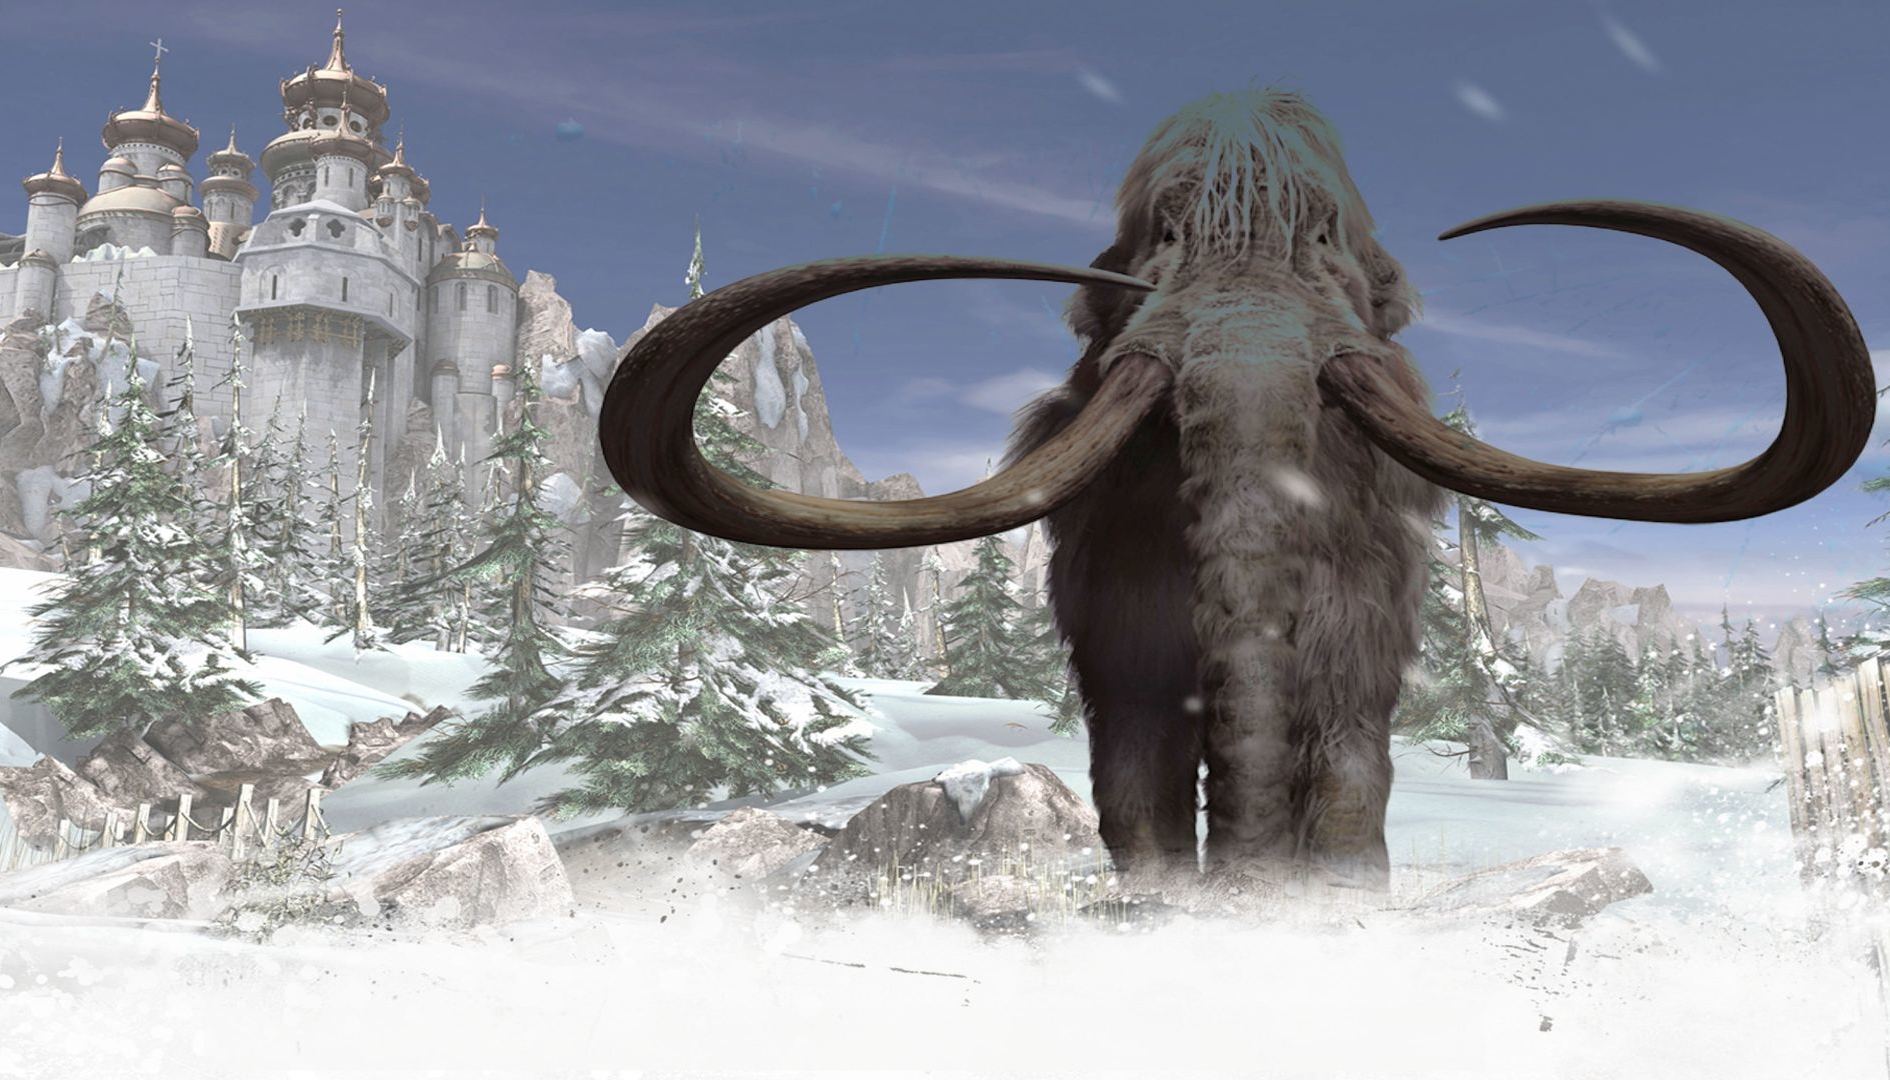 Syberia Trilogy per Nintendo Switch ha una data di uscita